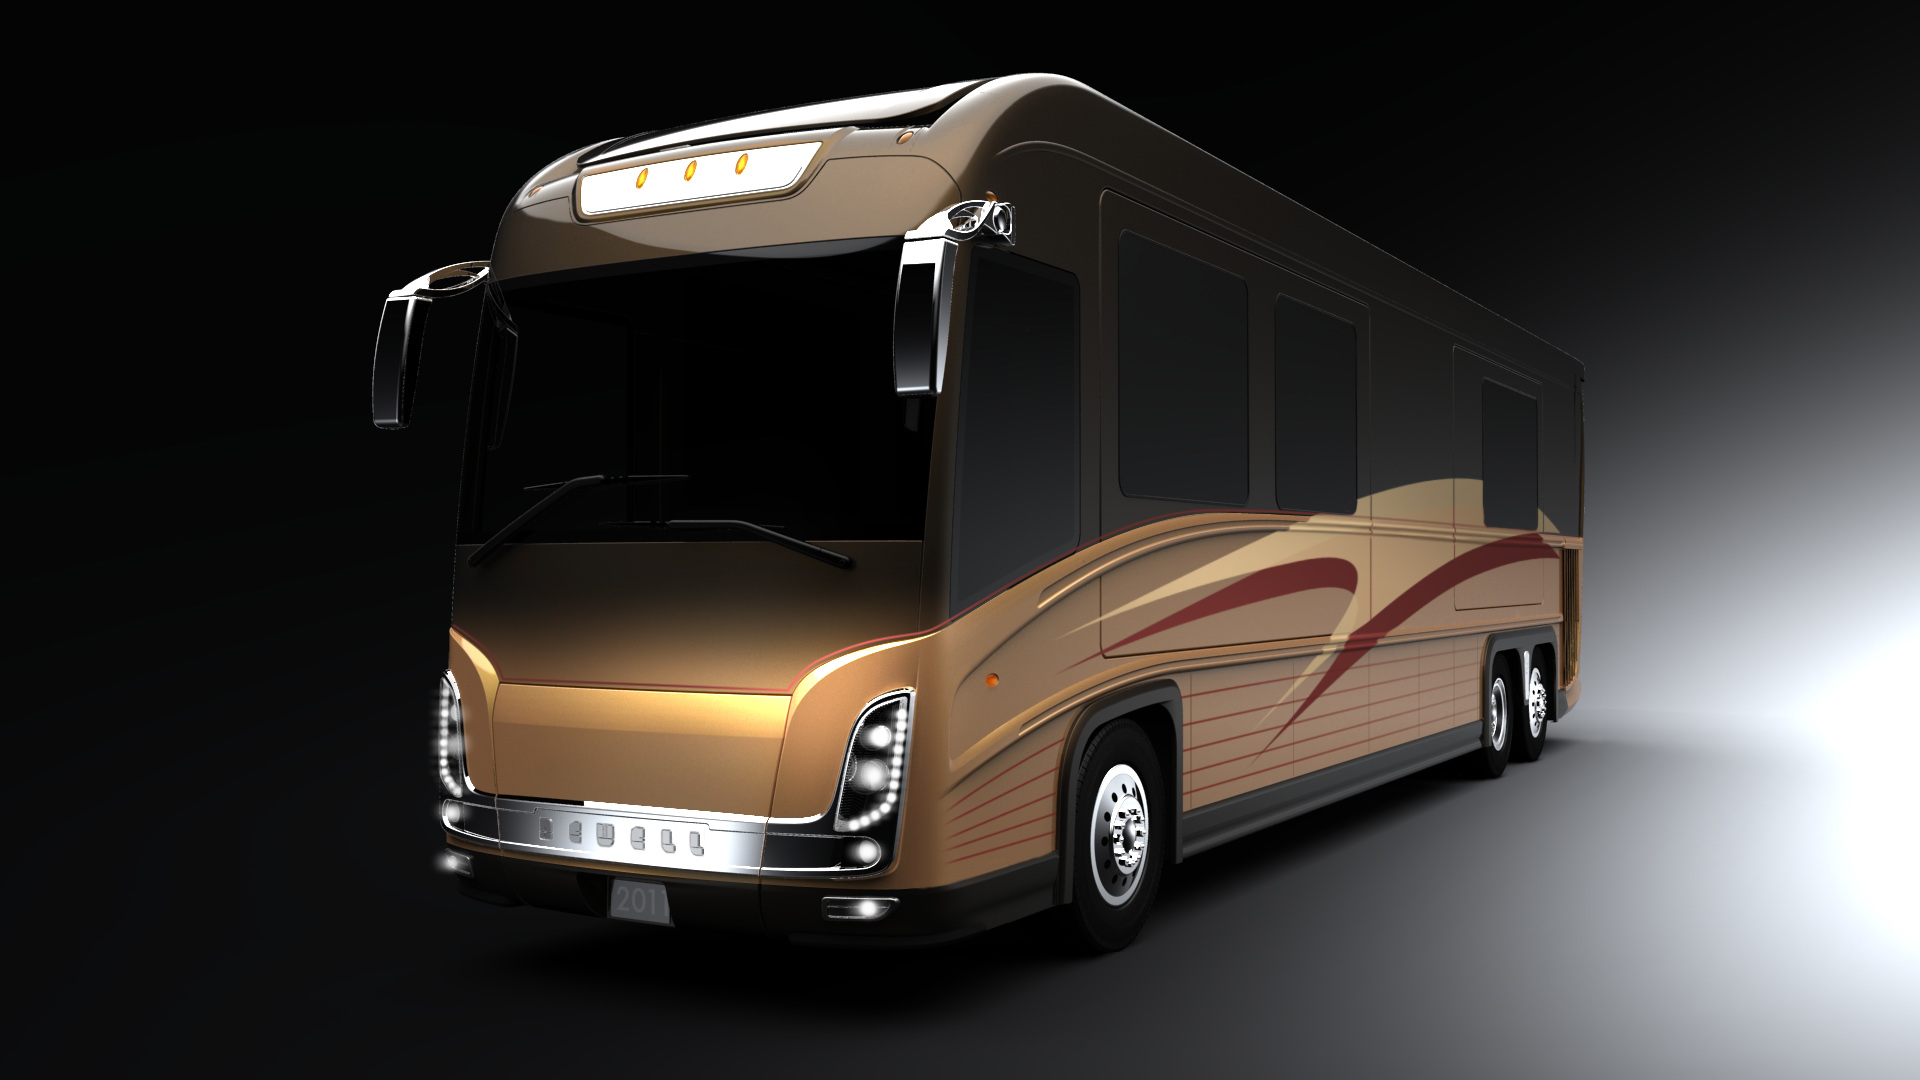 Newell Coach Is Now Producing 2011 Models Styled by Top Designer ...